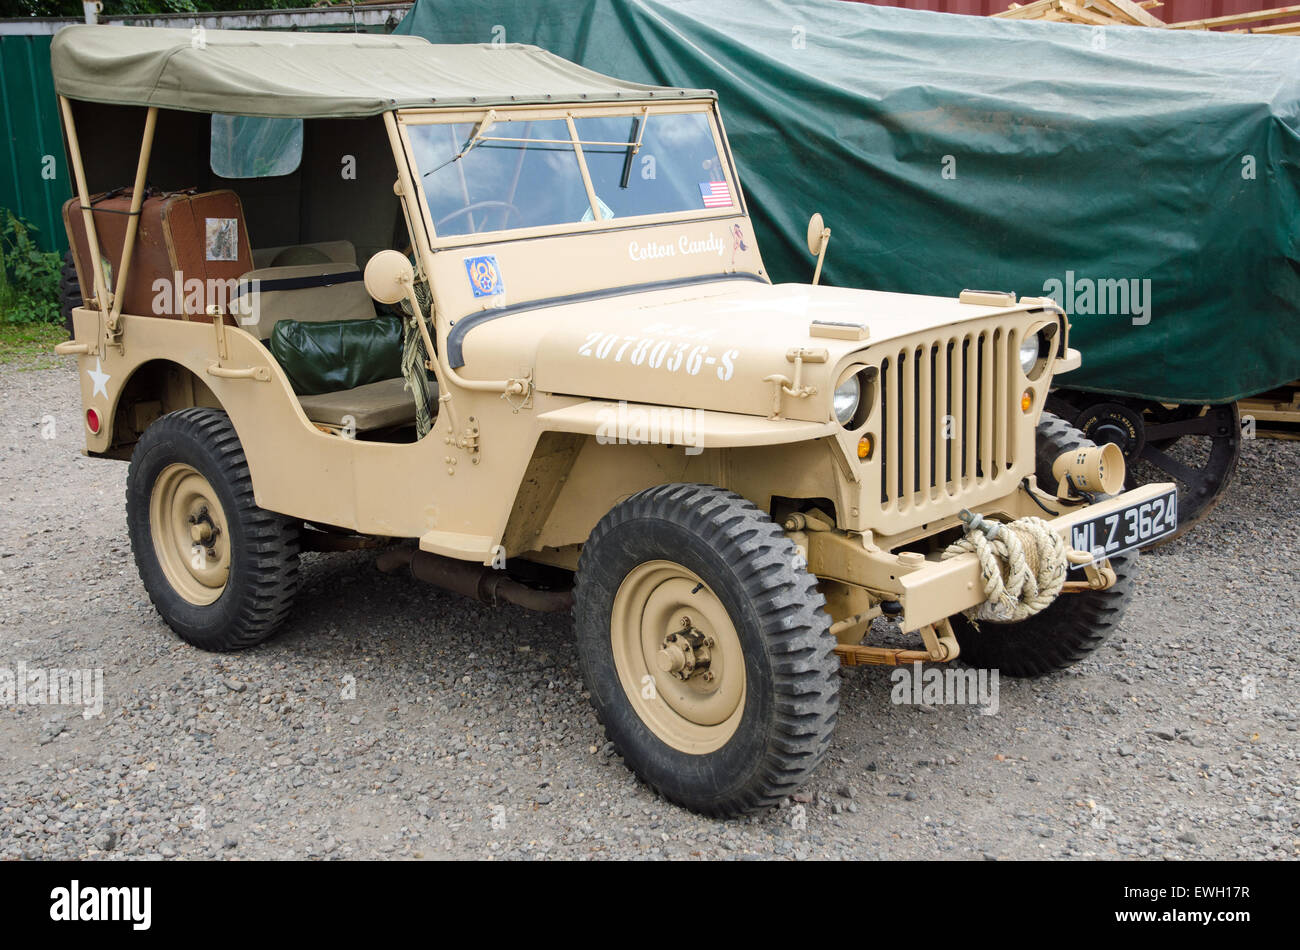 A willys jeep from ww2 in desert sand colours these classic 4 wheel drive vehicles